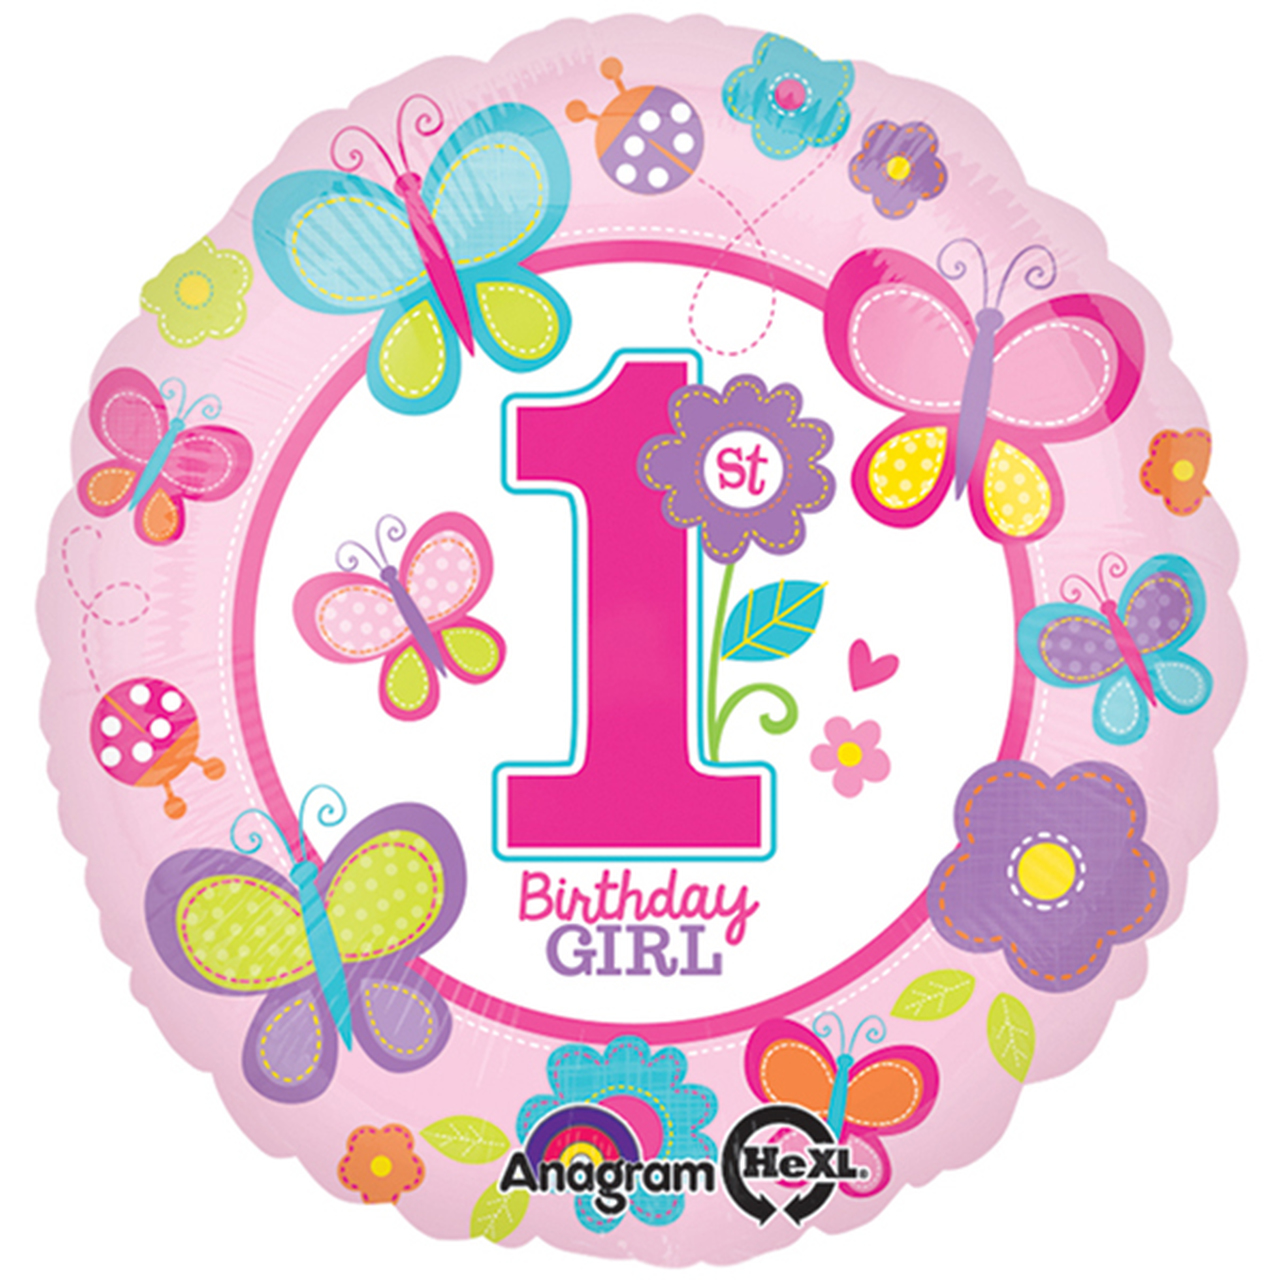 1st birthday butterfly clipart graphic freeuse library Butterfly 1st Birthday Foil Balloon graphic freeuse library